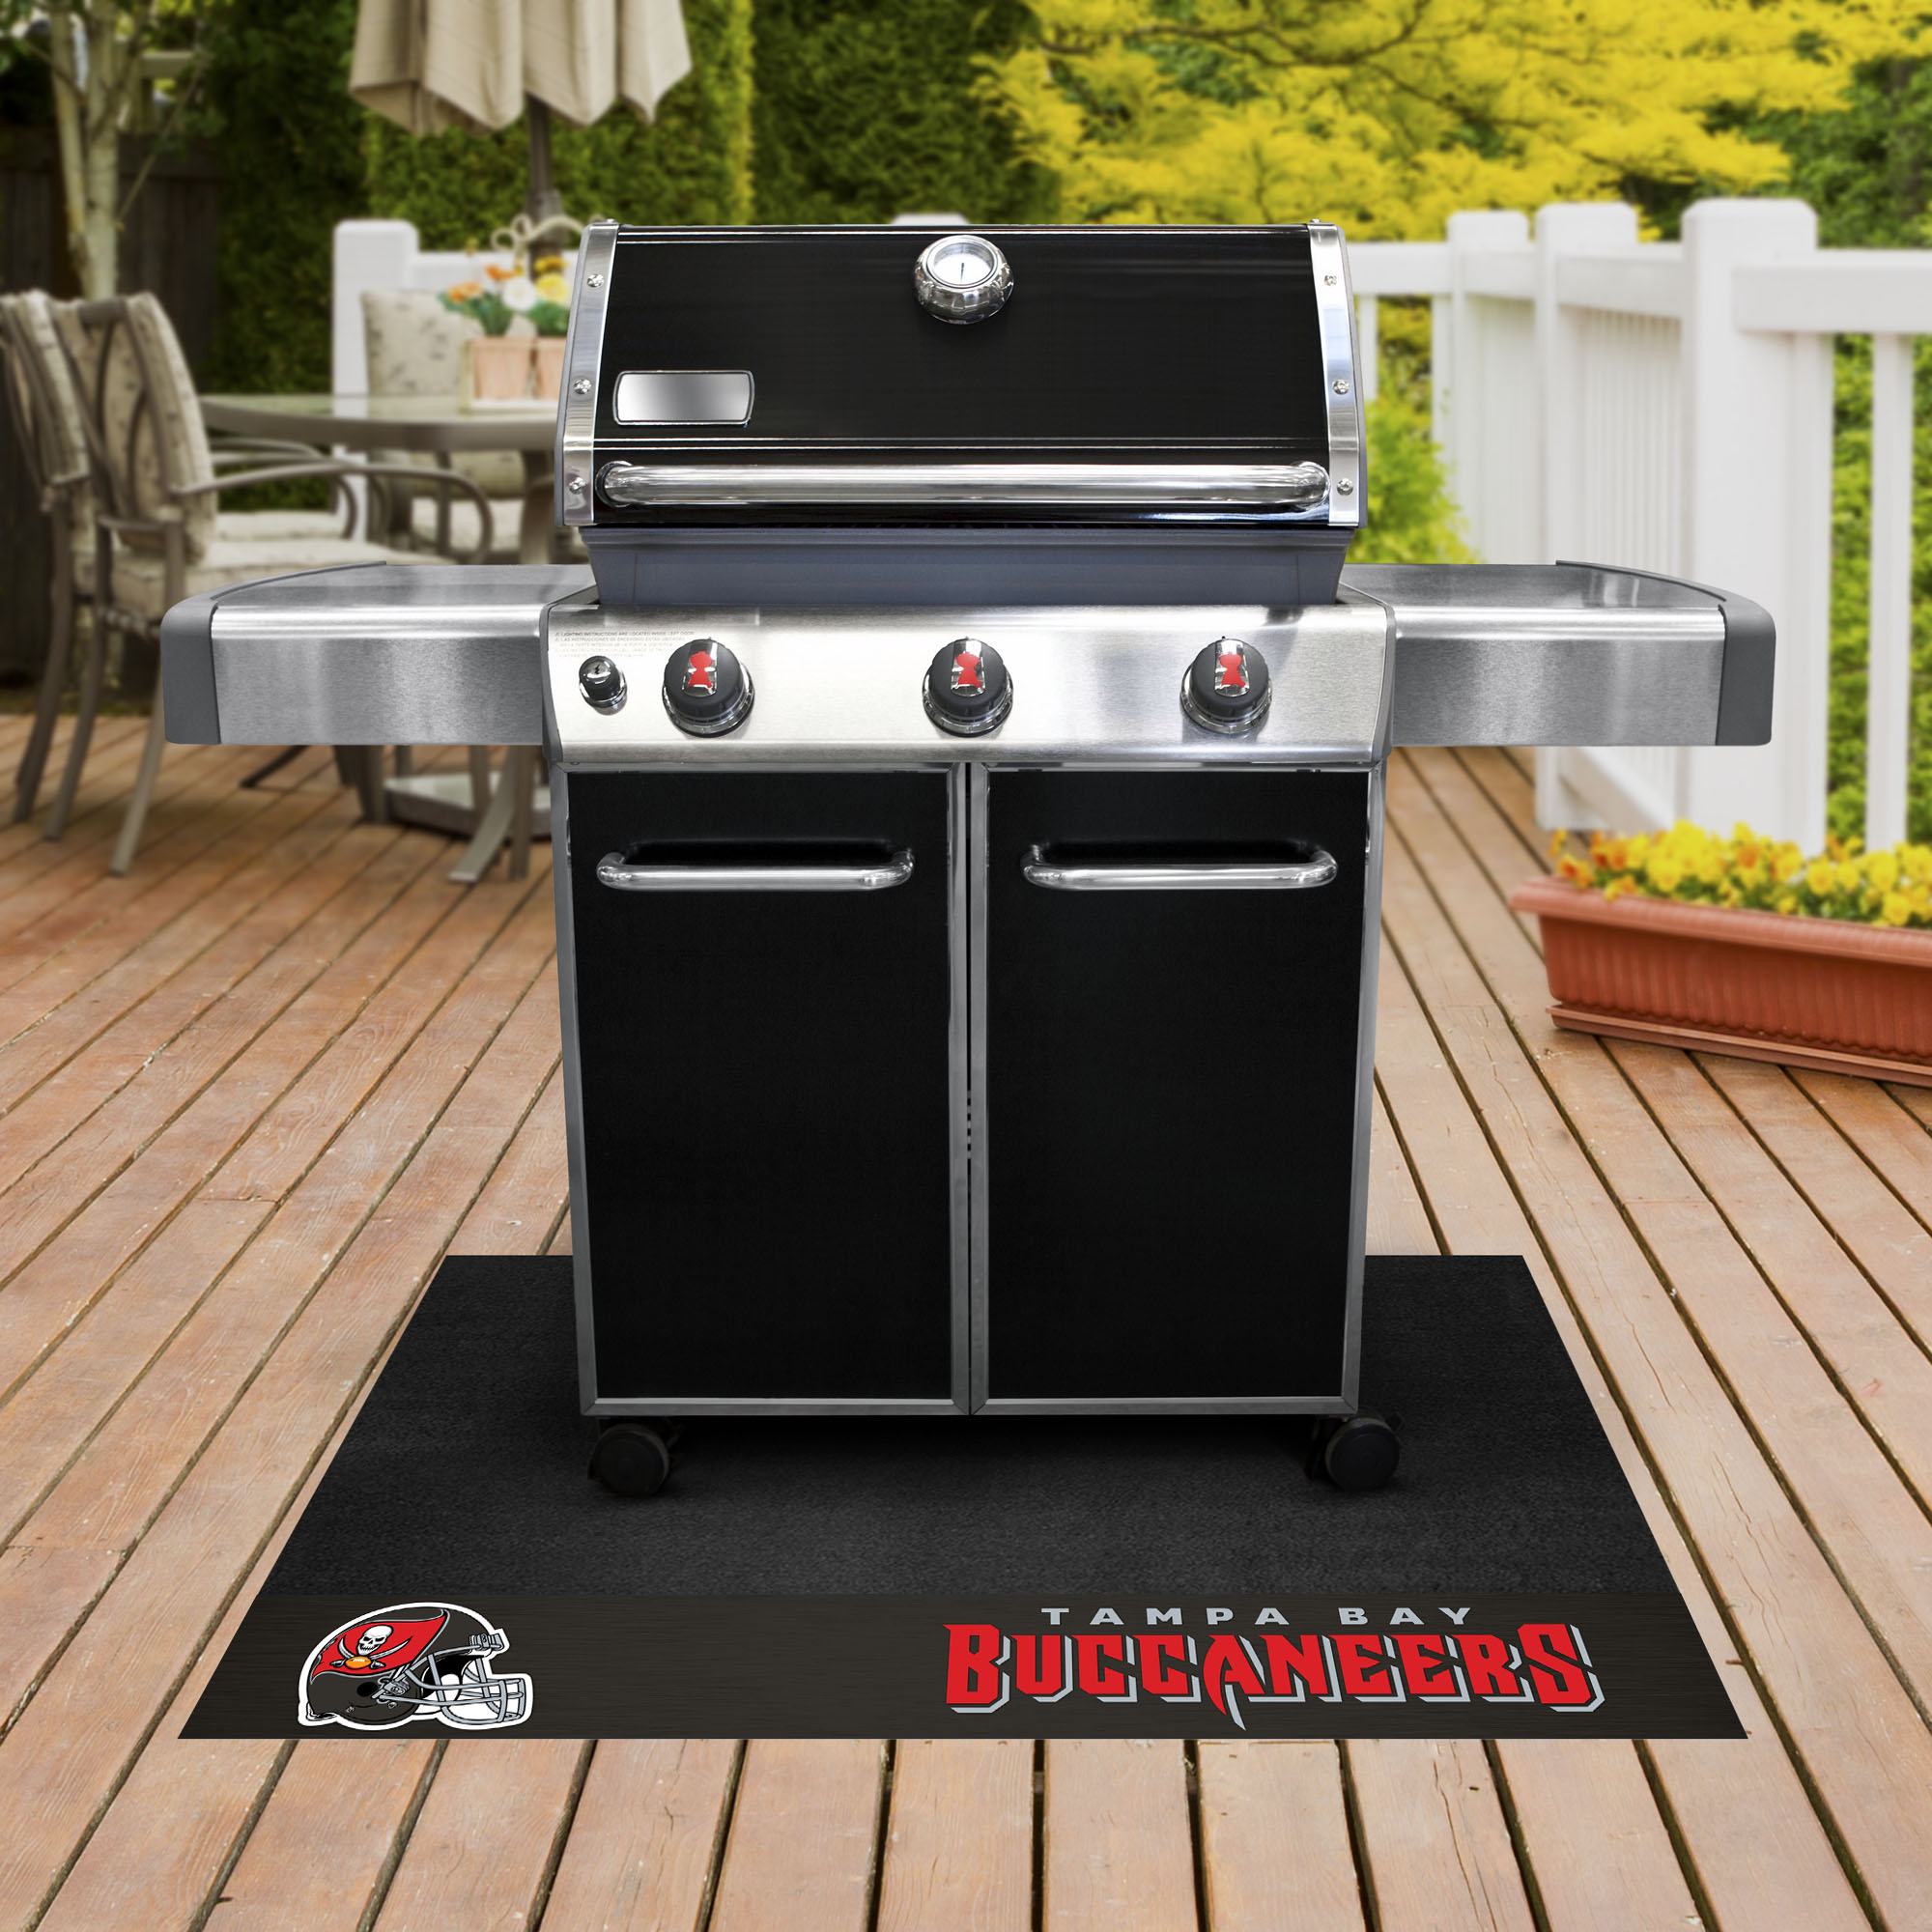 Tampa Bay Buccaneers NFL Grill Mat